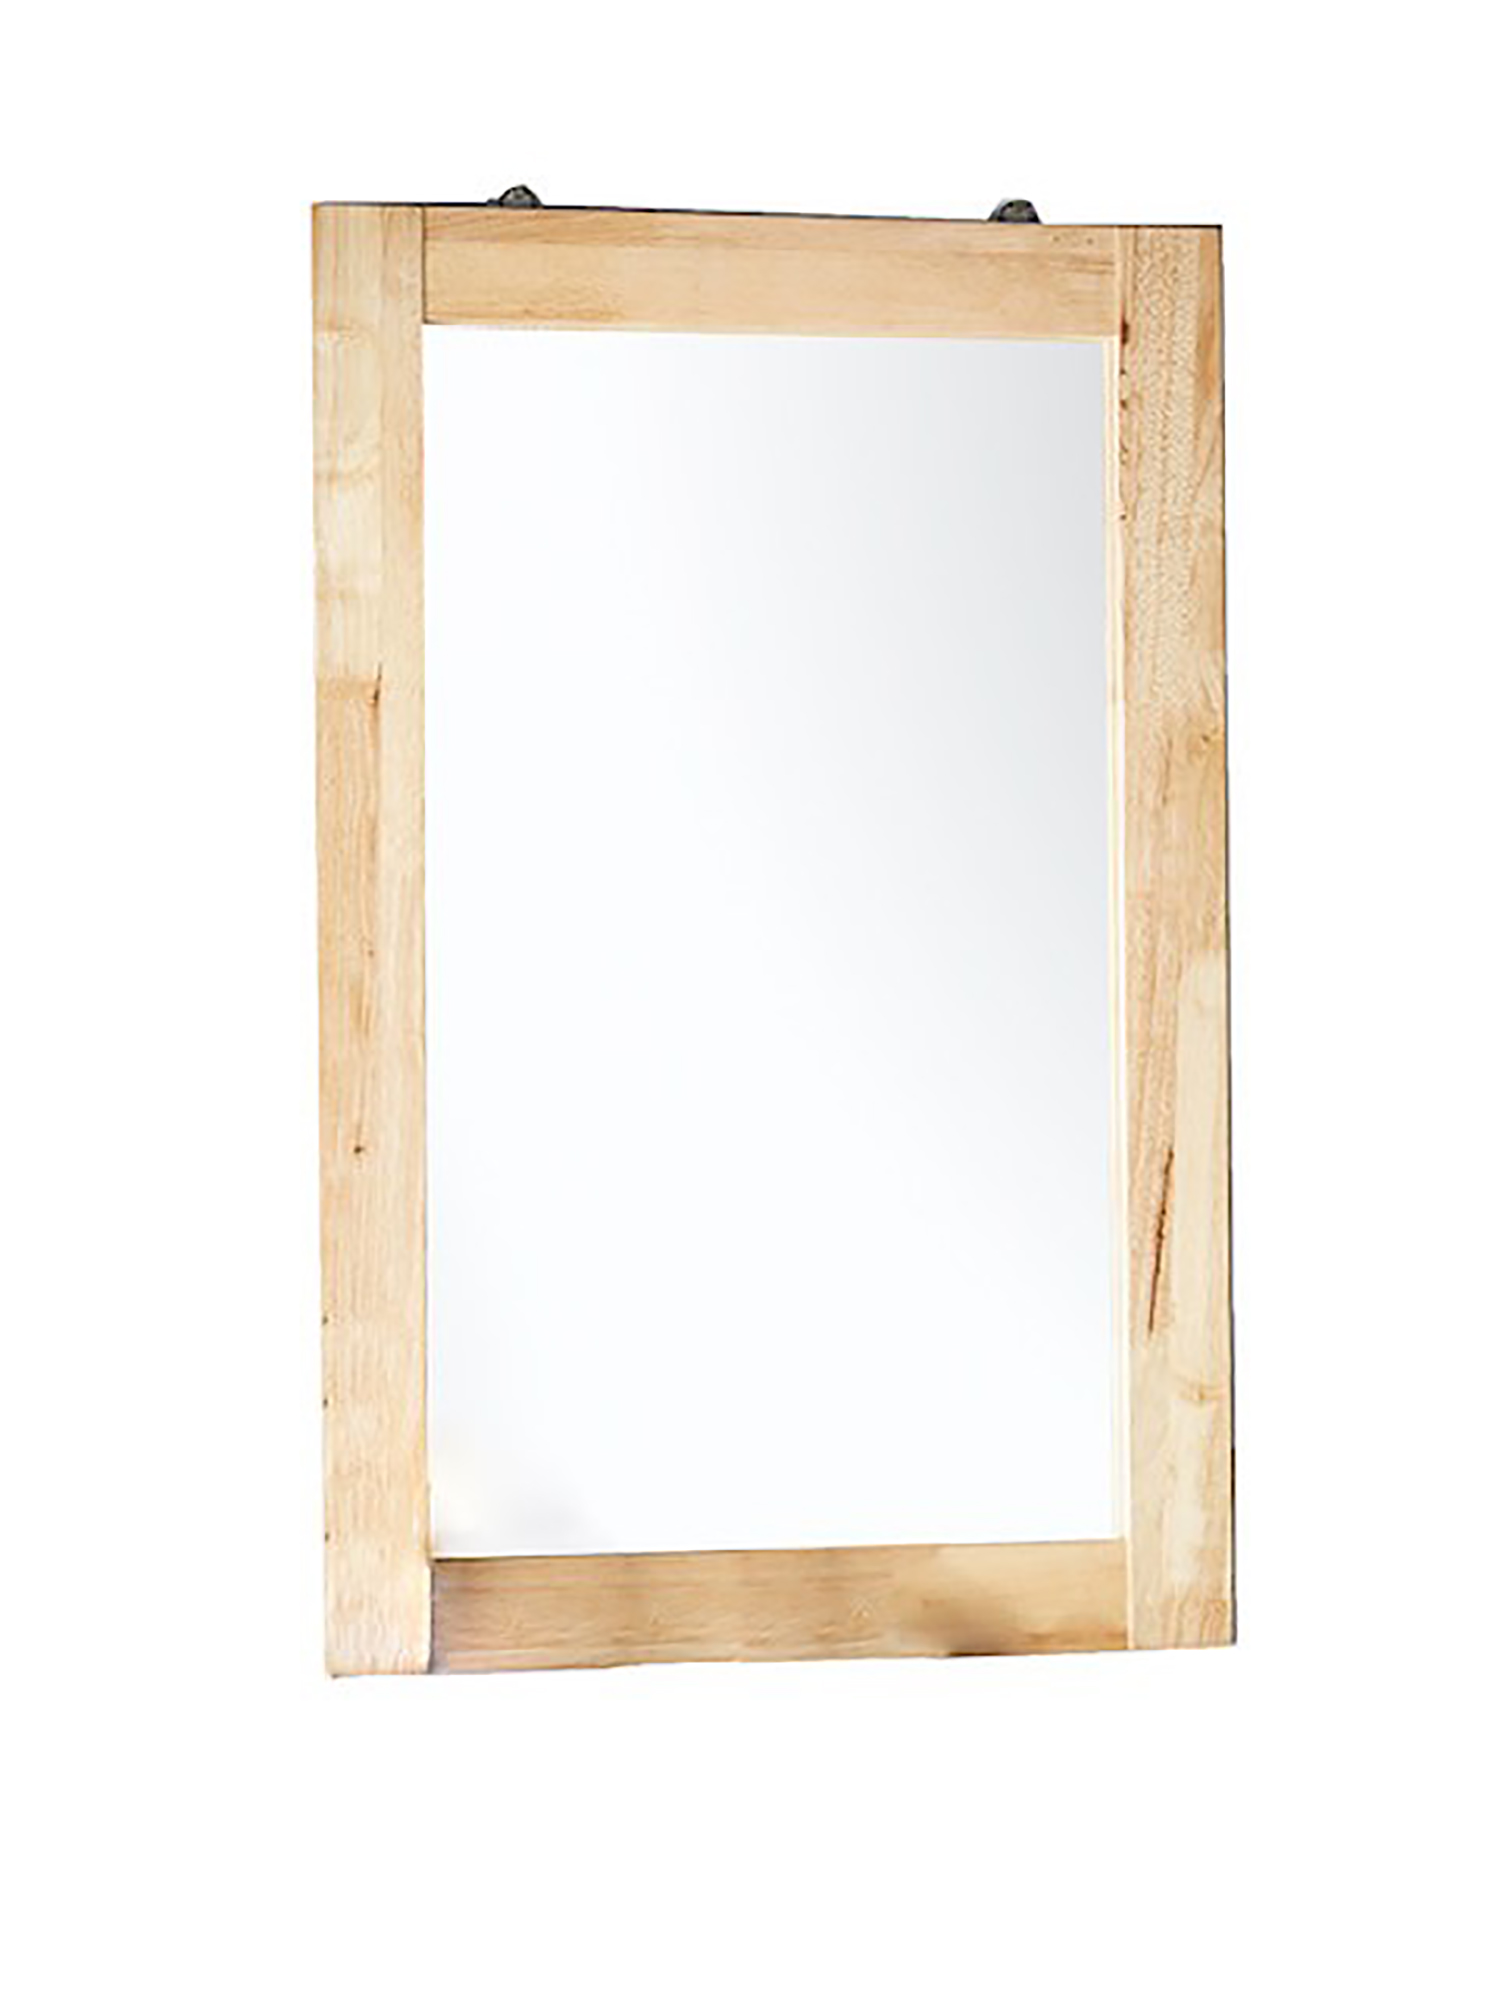 35 5 In Tioga Natural Multi Function Rectangular All Wood Wall Mirror Walmart Com Walmart Com